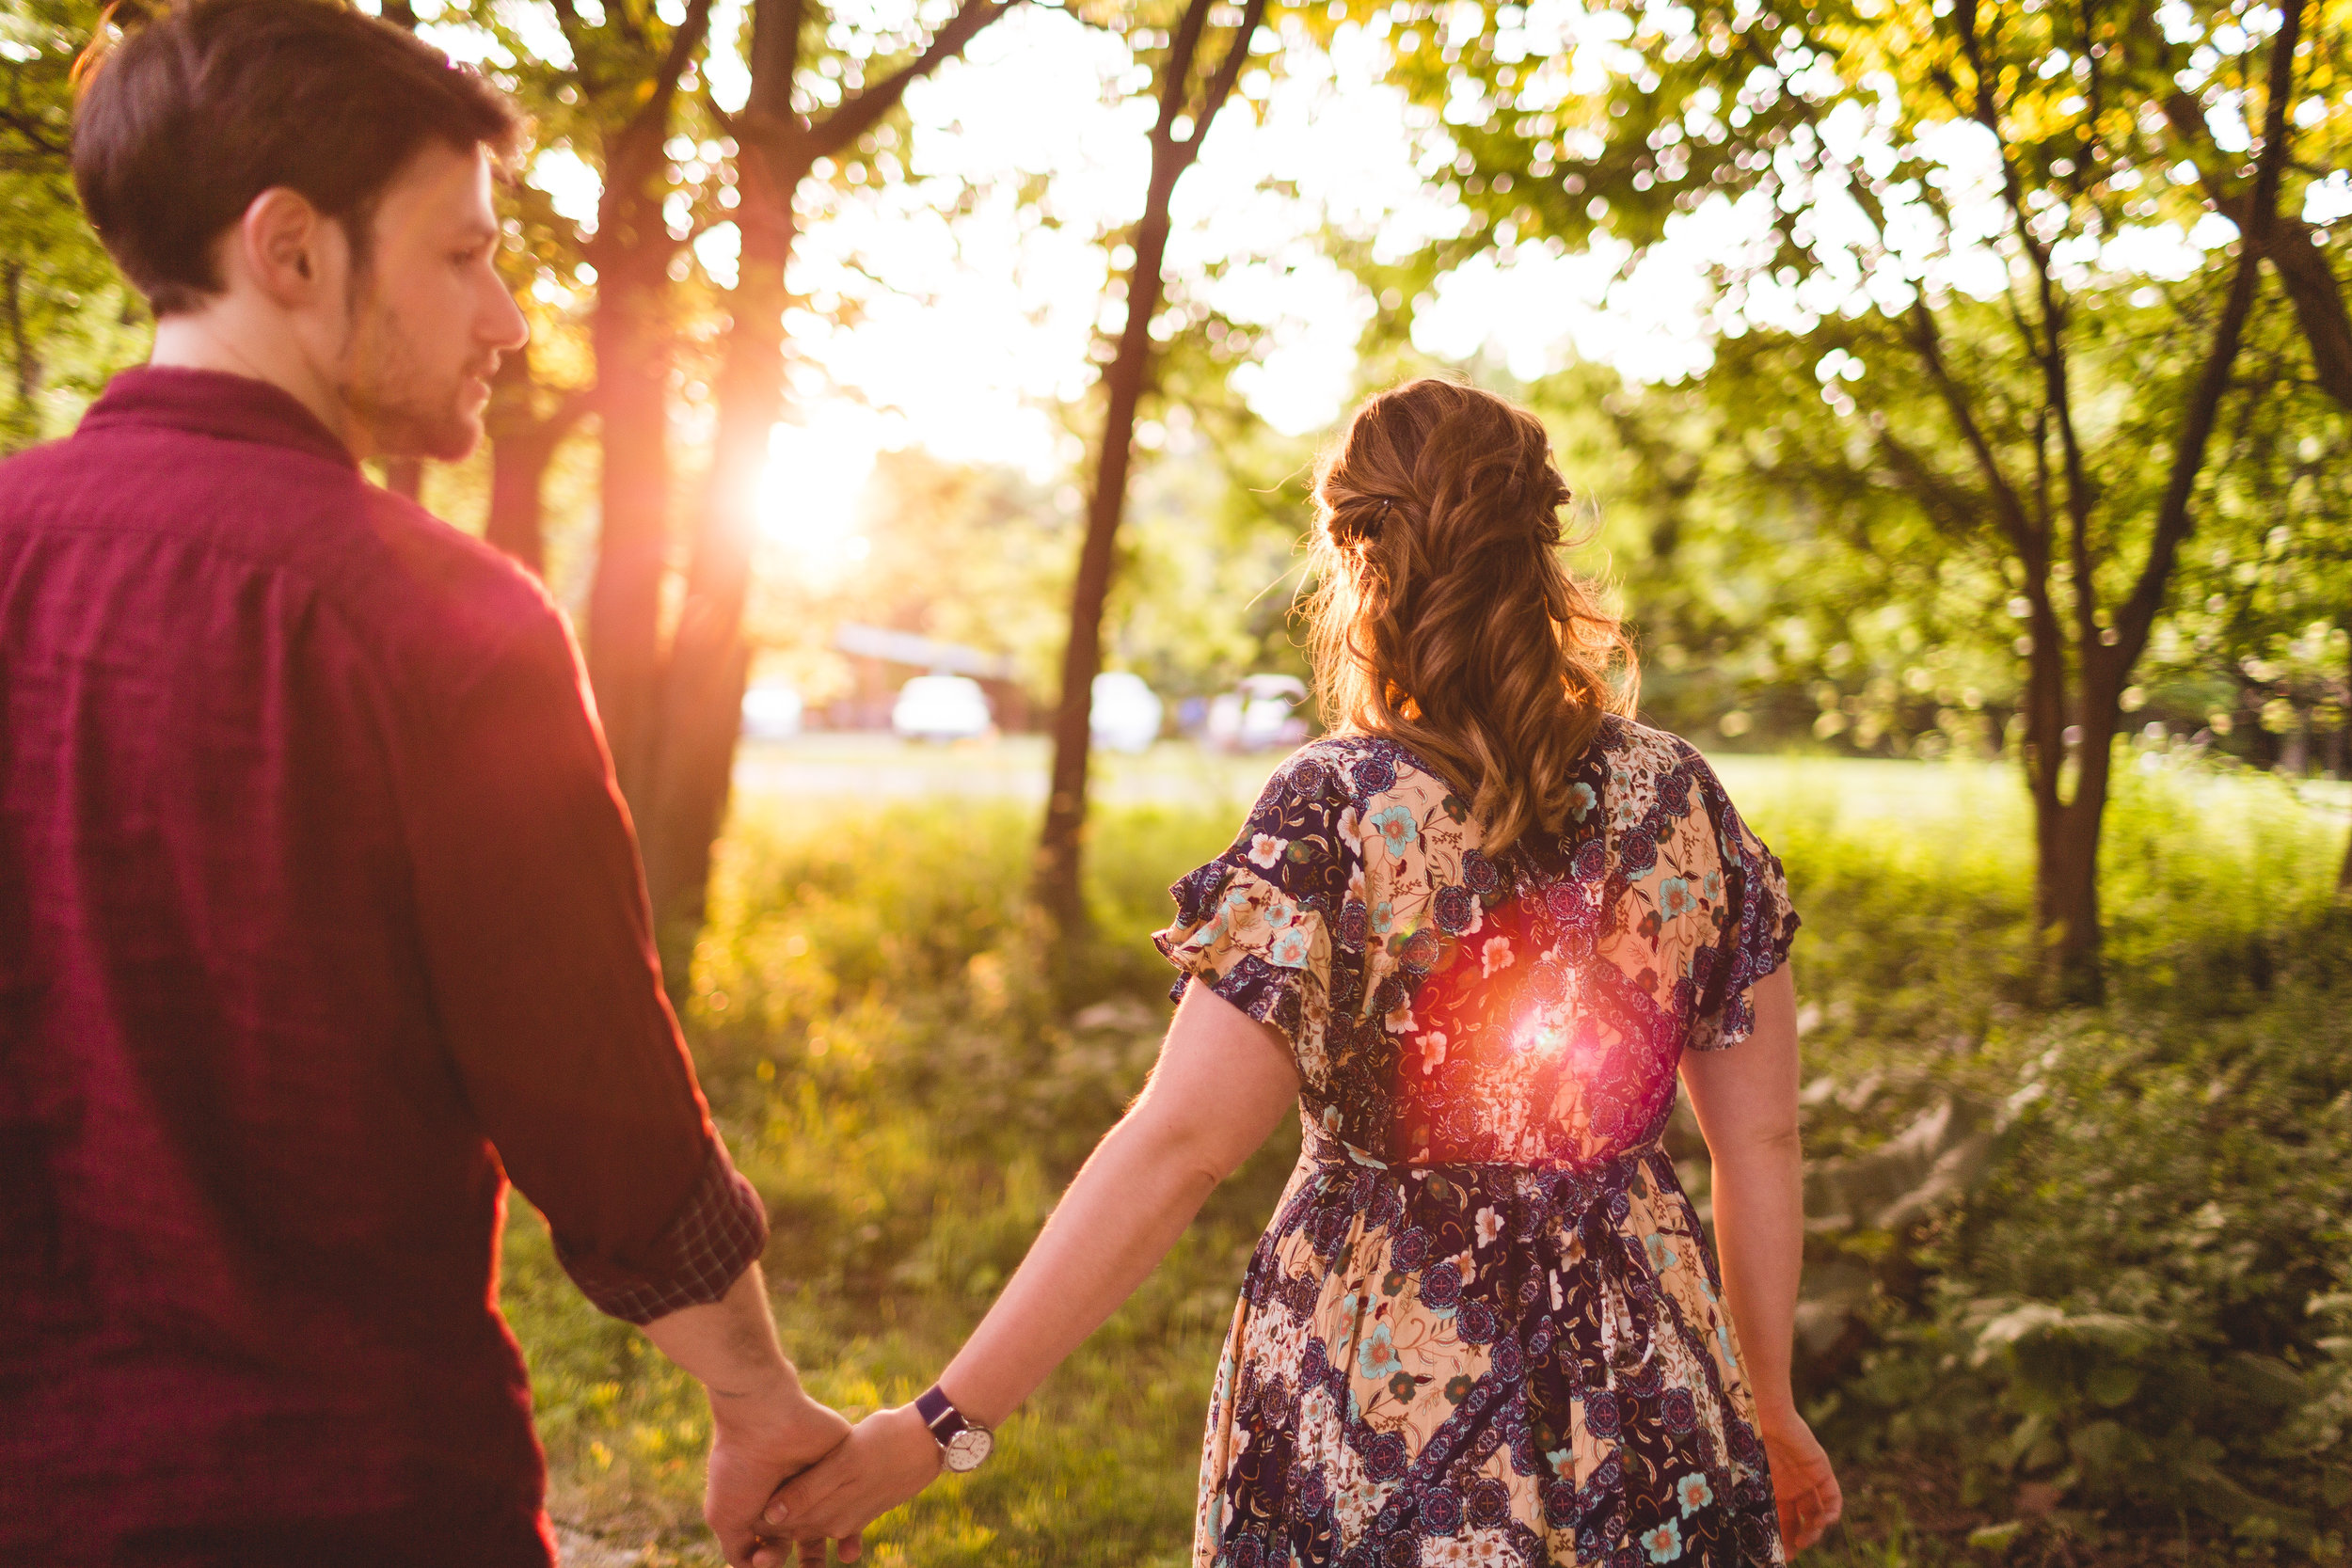 woman walks fiancé through woods during sunset in Pickerington Ponds Park in Ohio